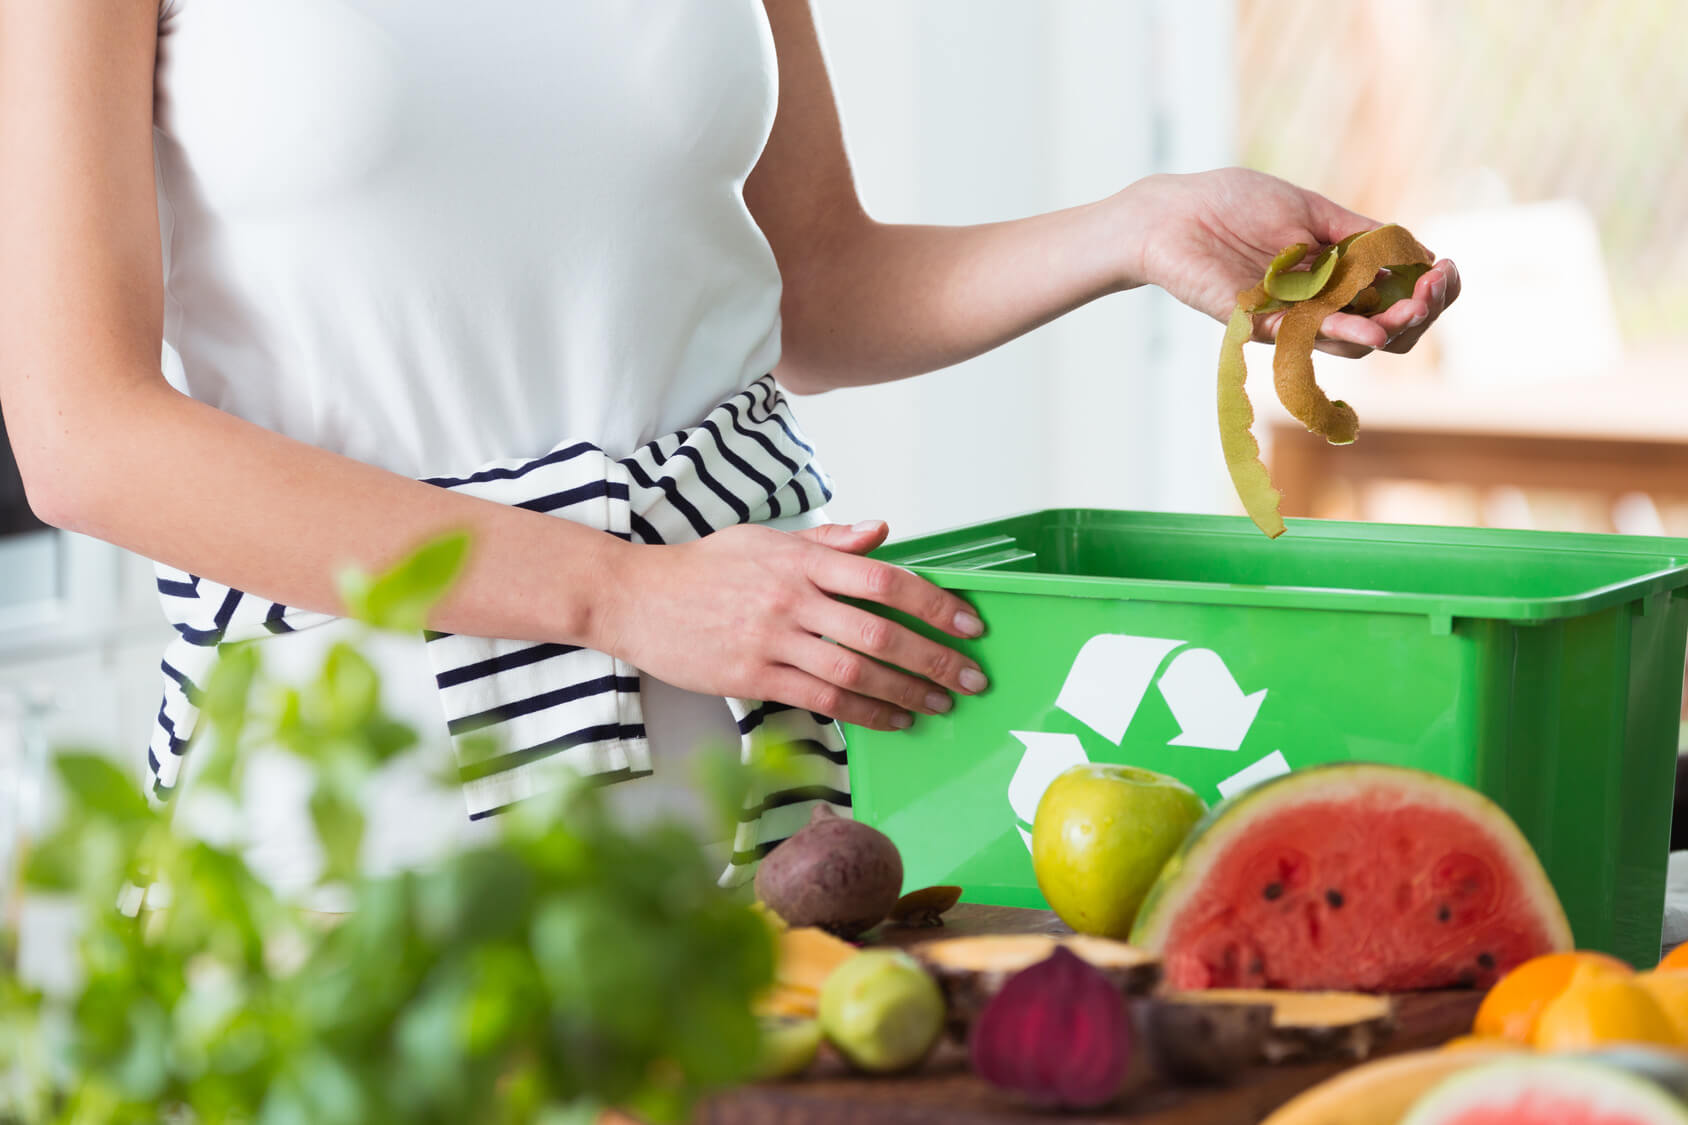 5 Ways To Be Environmentally Friendly In The Kitchen